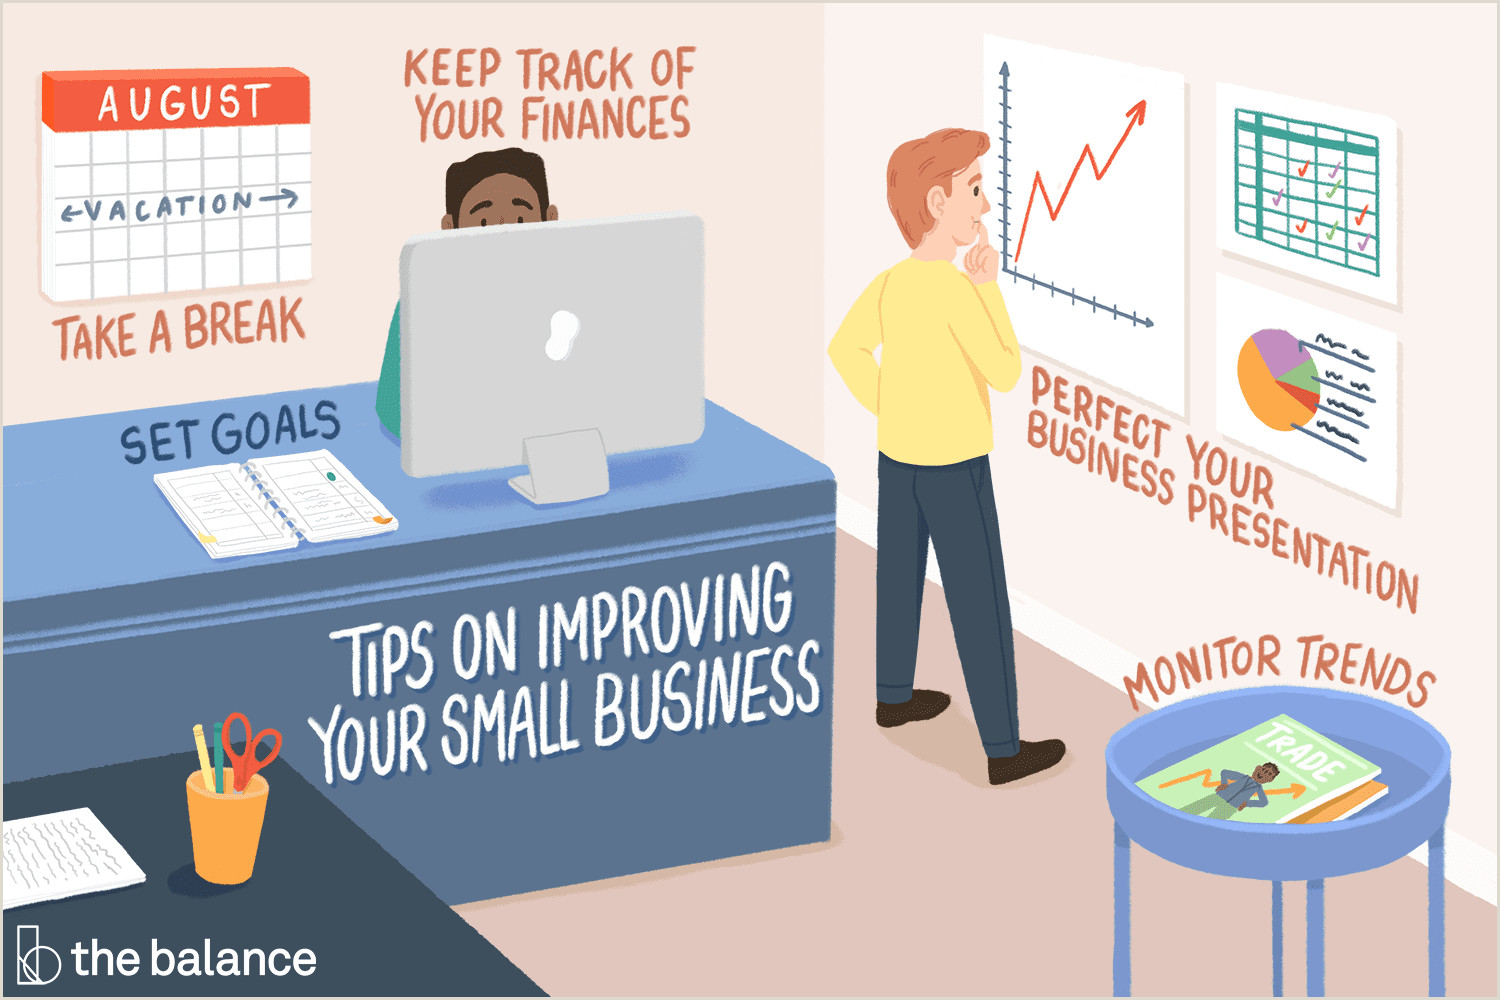 Making My Own Business Card 10 Straightforward Ways To Improve Your Small Business